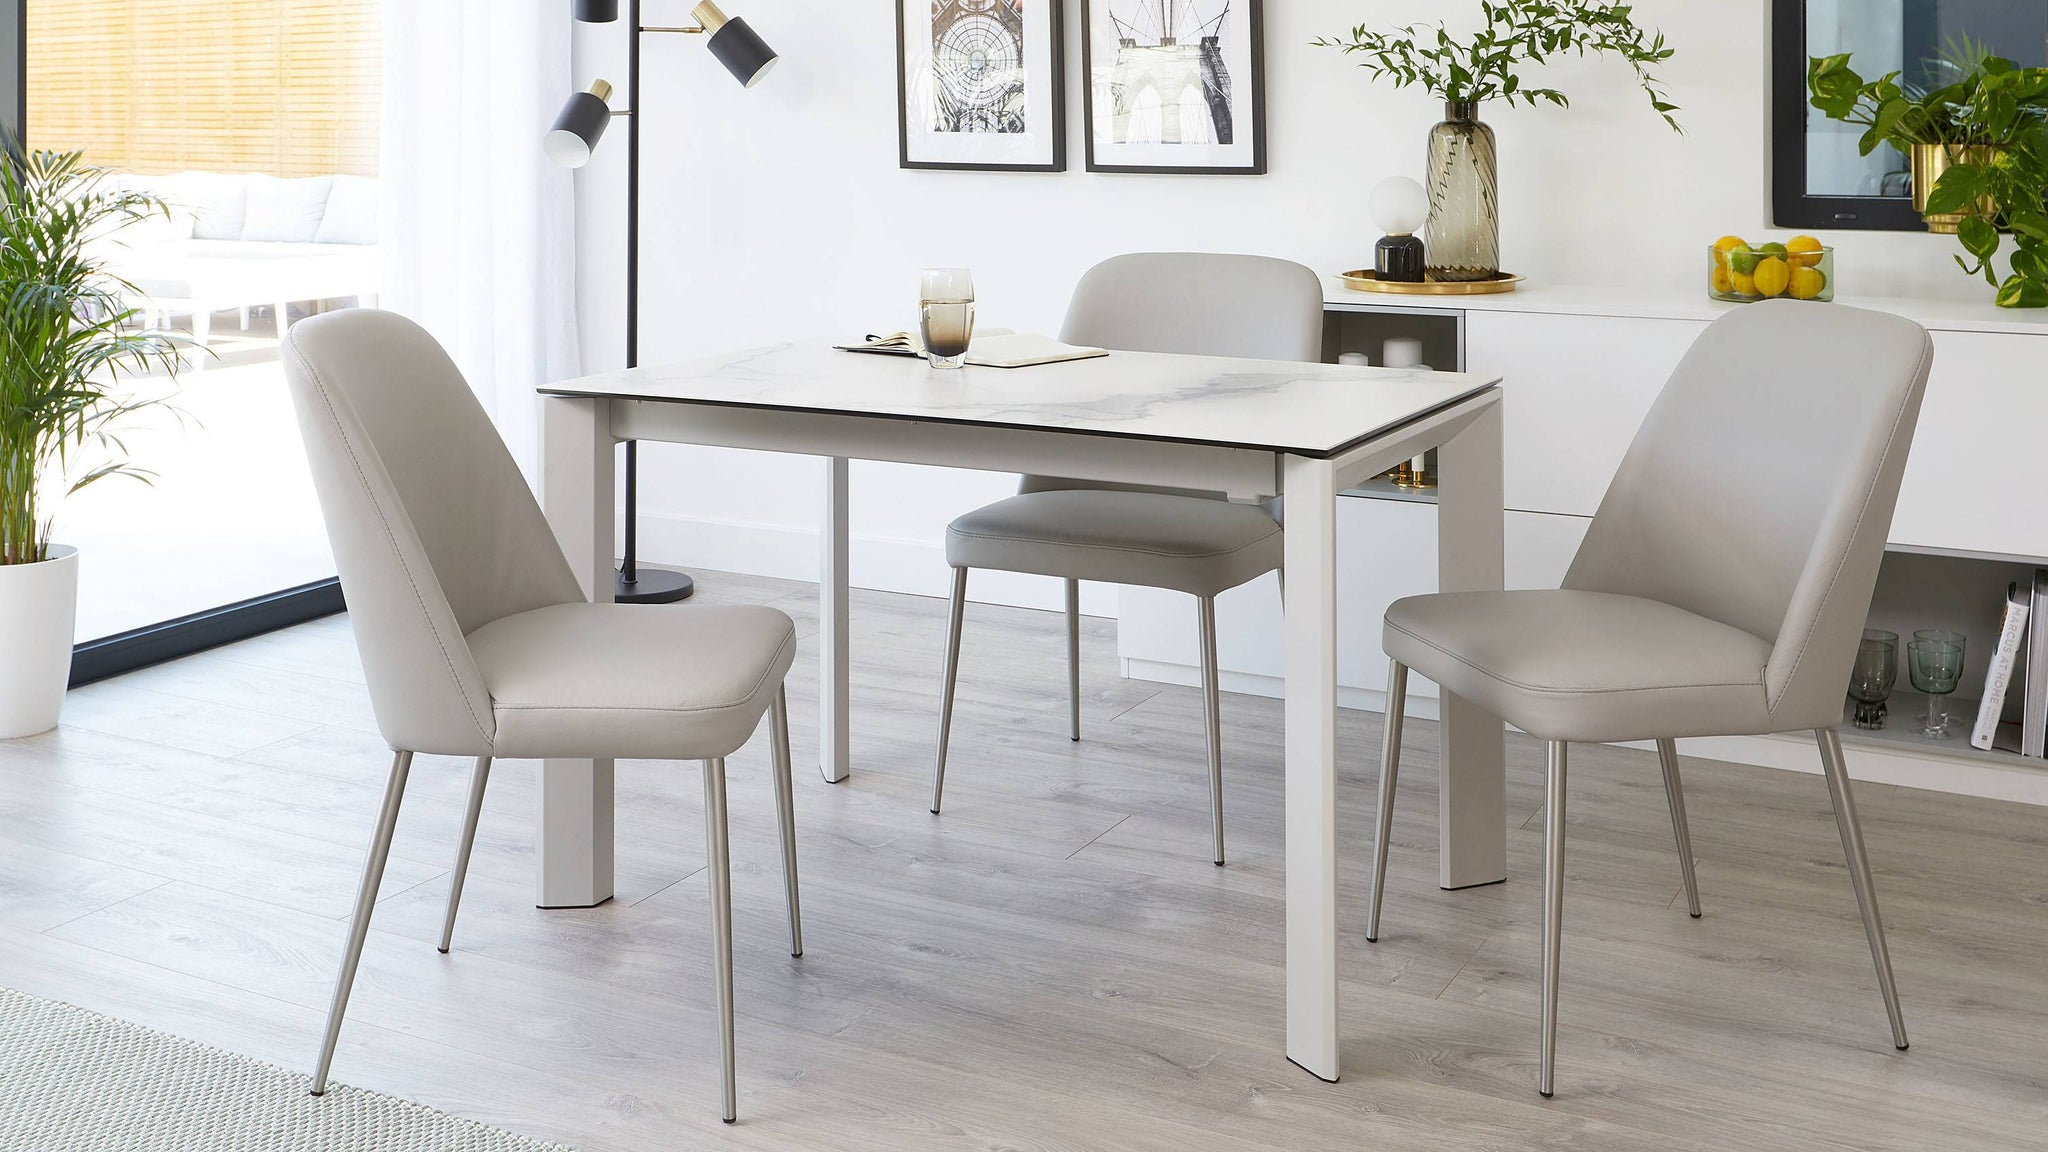 Louis 4-8 seater extending marble table